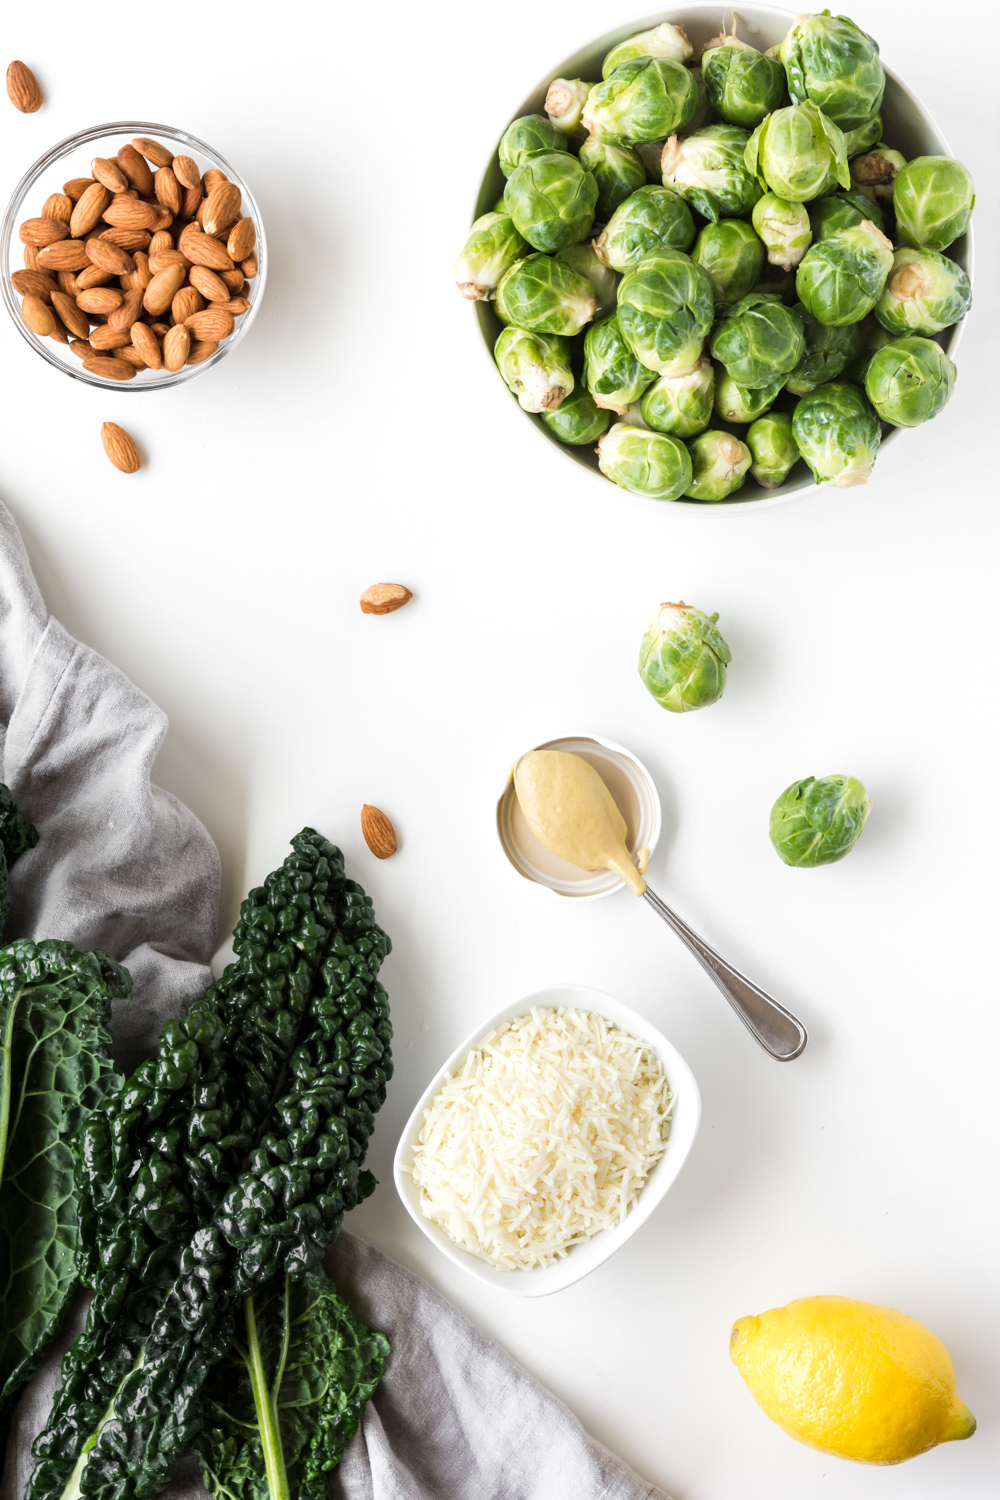 brussels sprouts kale pecorino and almonds.jpg